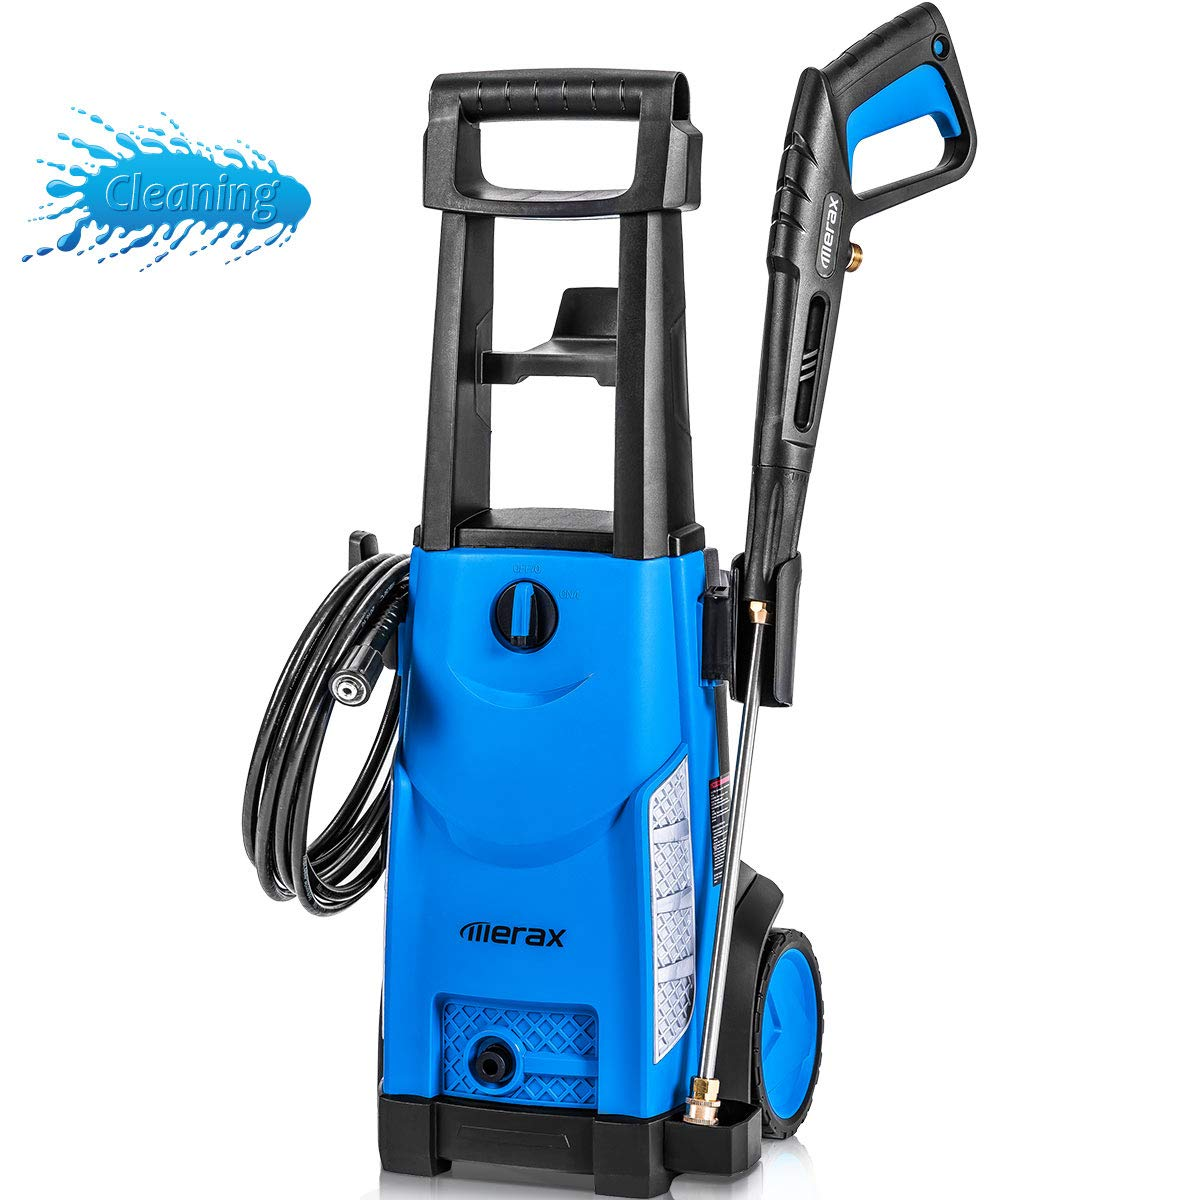 Merax 1800PSI 1.3GPM Electric Pressure Washer, Compact Power Washer with Metal Spray Wand, 20-Foot Hose and Removable Detergent Tank Royal Blue